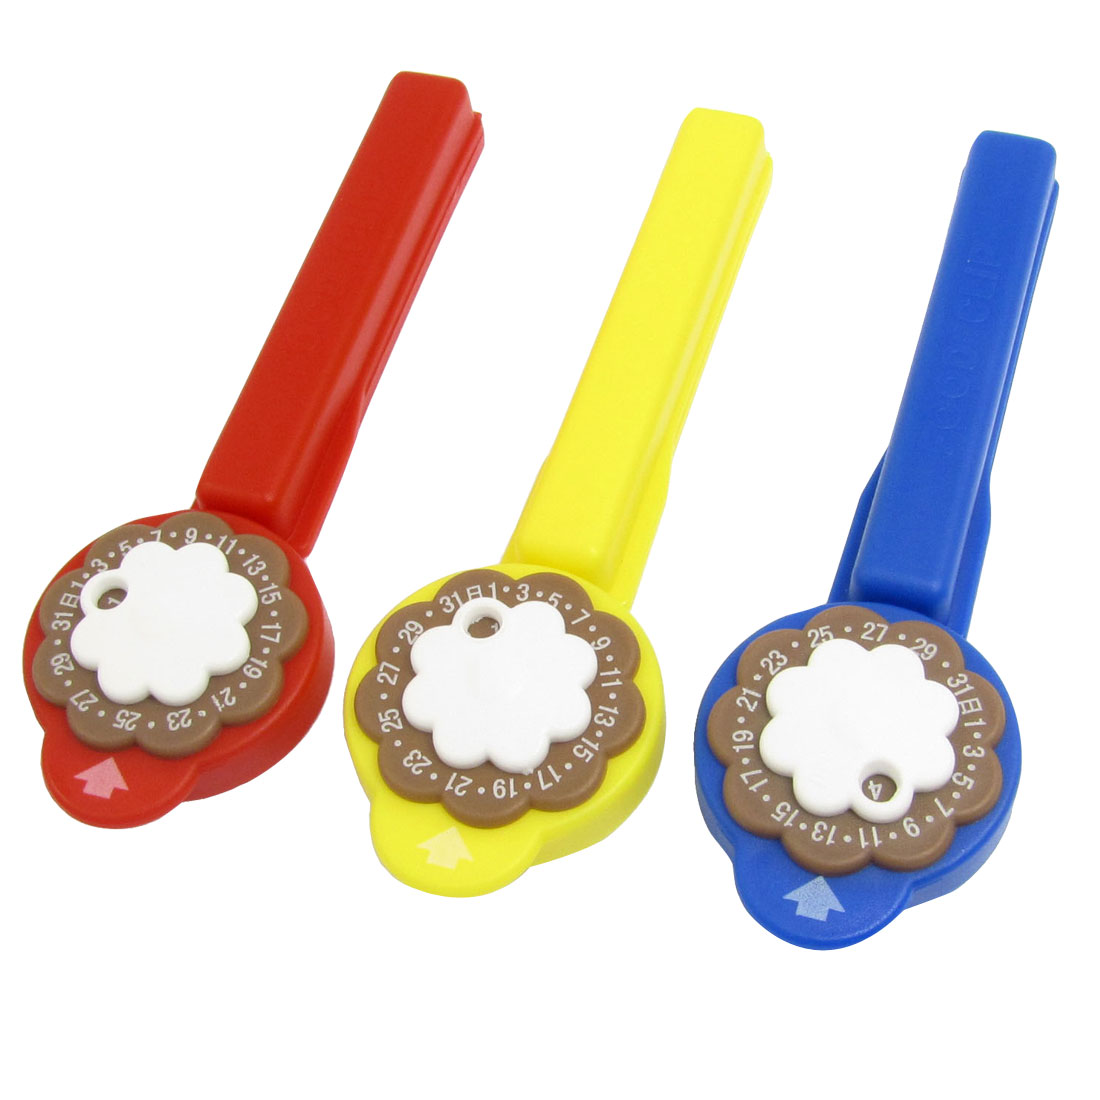 Floral Plastic Fresh Keeper Clips Food Bag Sealer Blue Yellow Red 3 Pcs